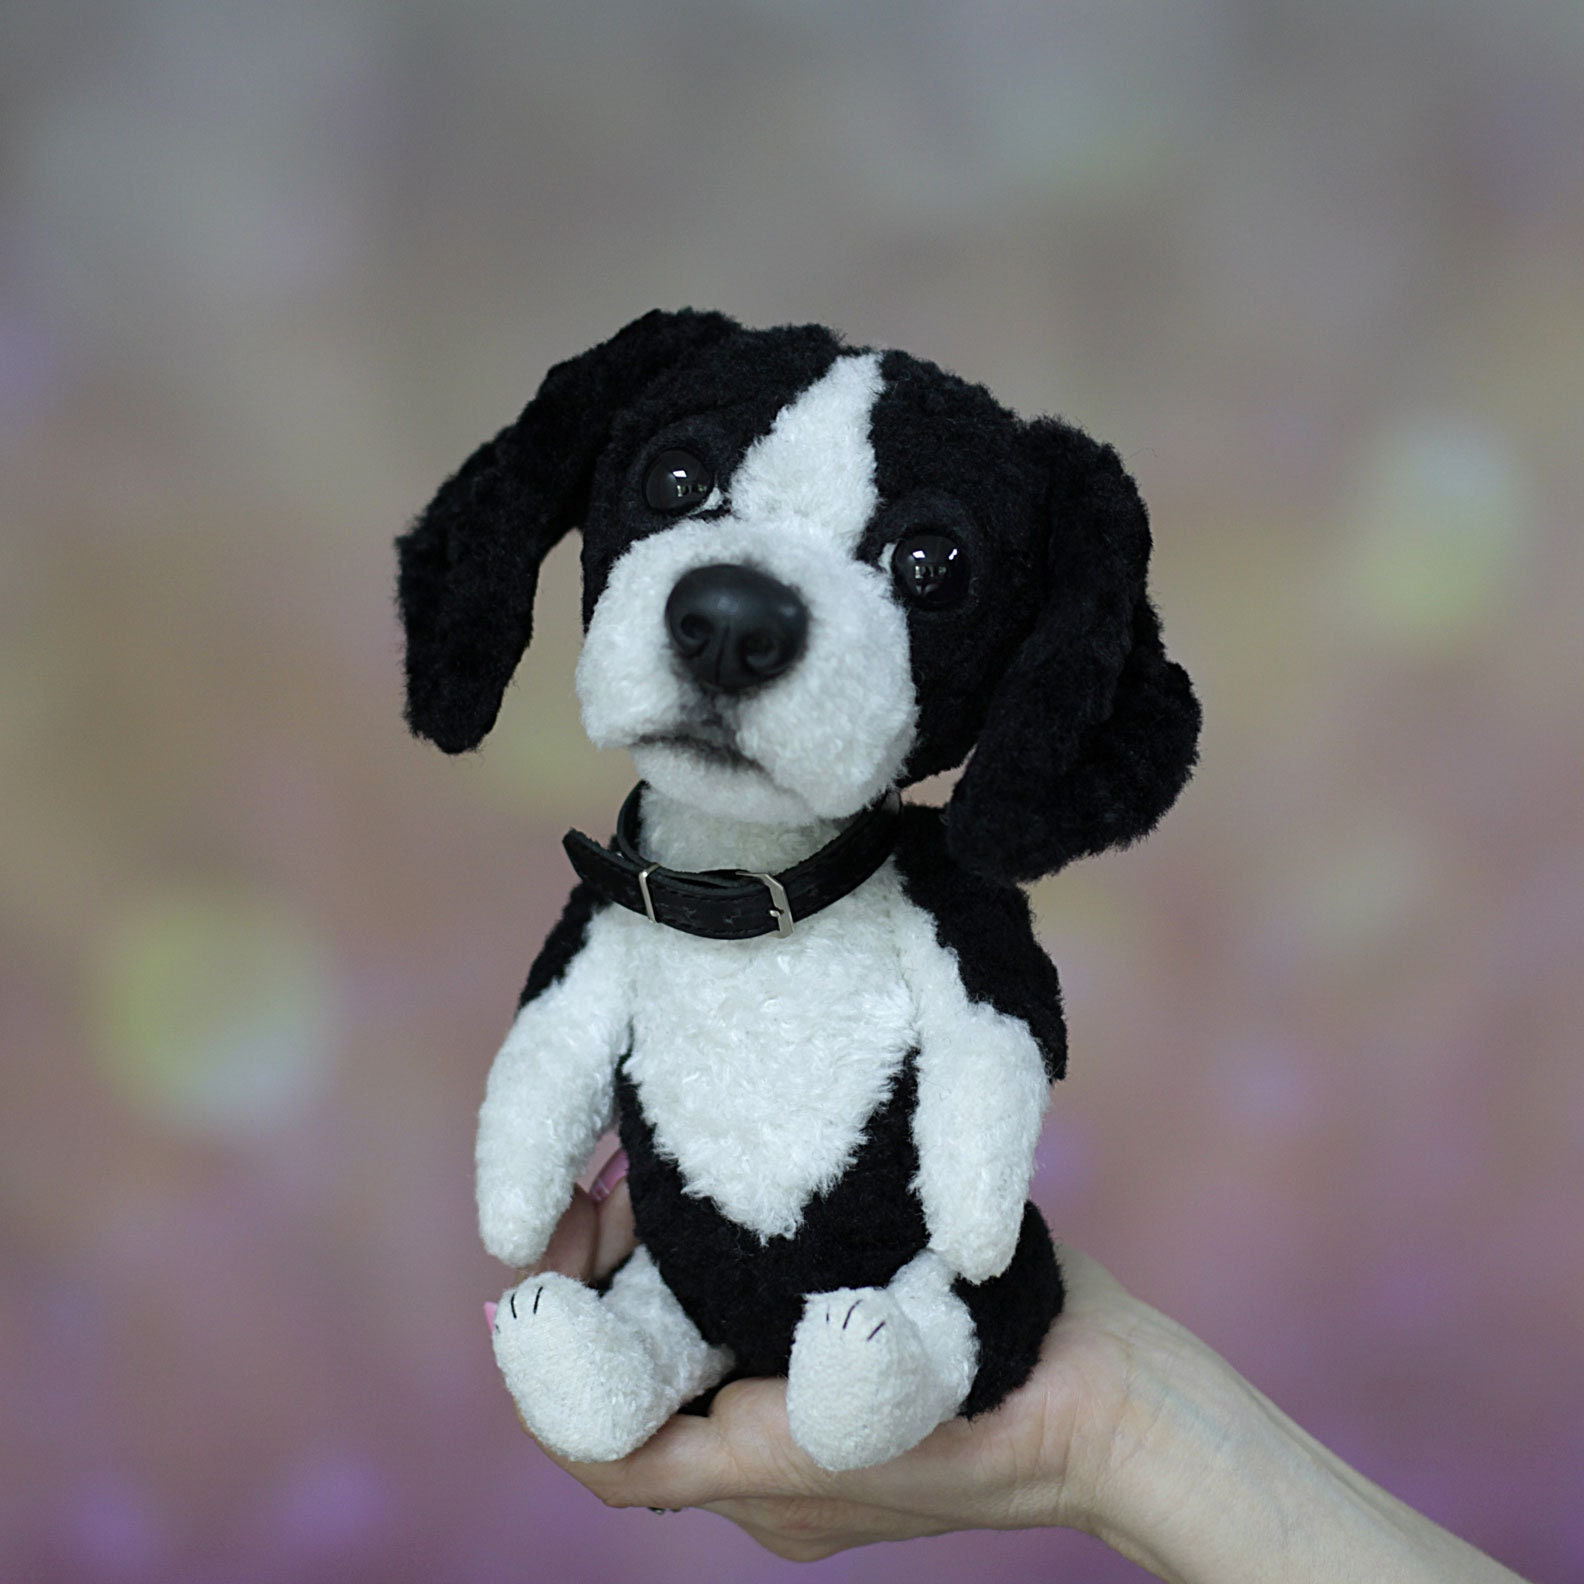 792056d7a40 Made to order miniature dog Pocket size Stuffed cuddly toy